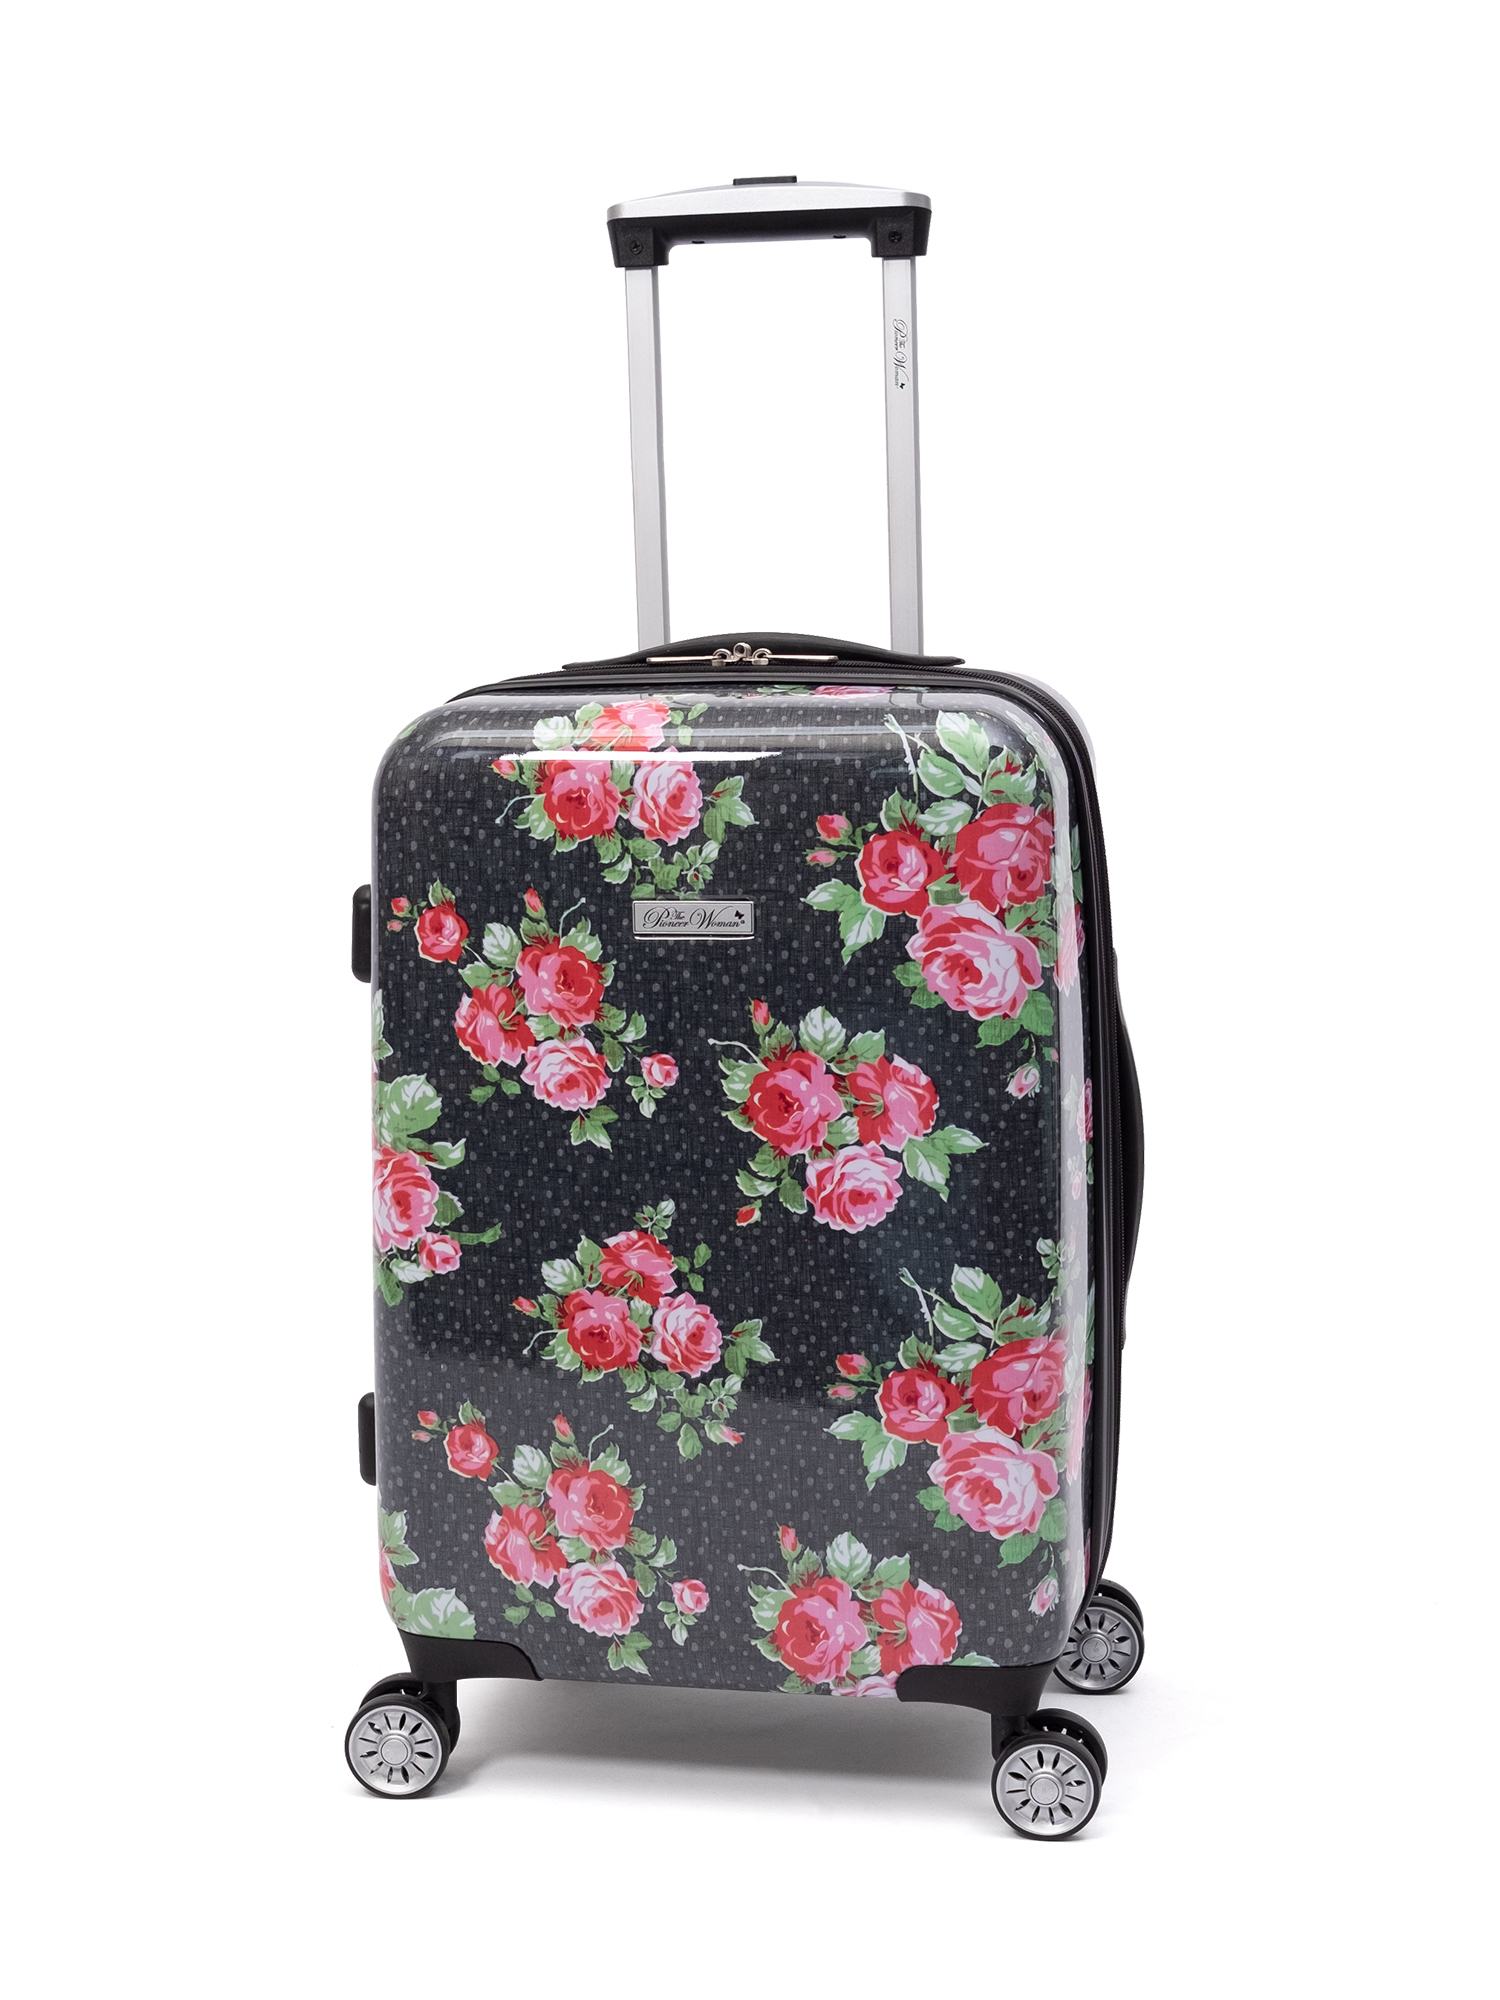 "The Pioneer Woman Hardside Luggage 20"" Carry On Suitcase"